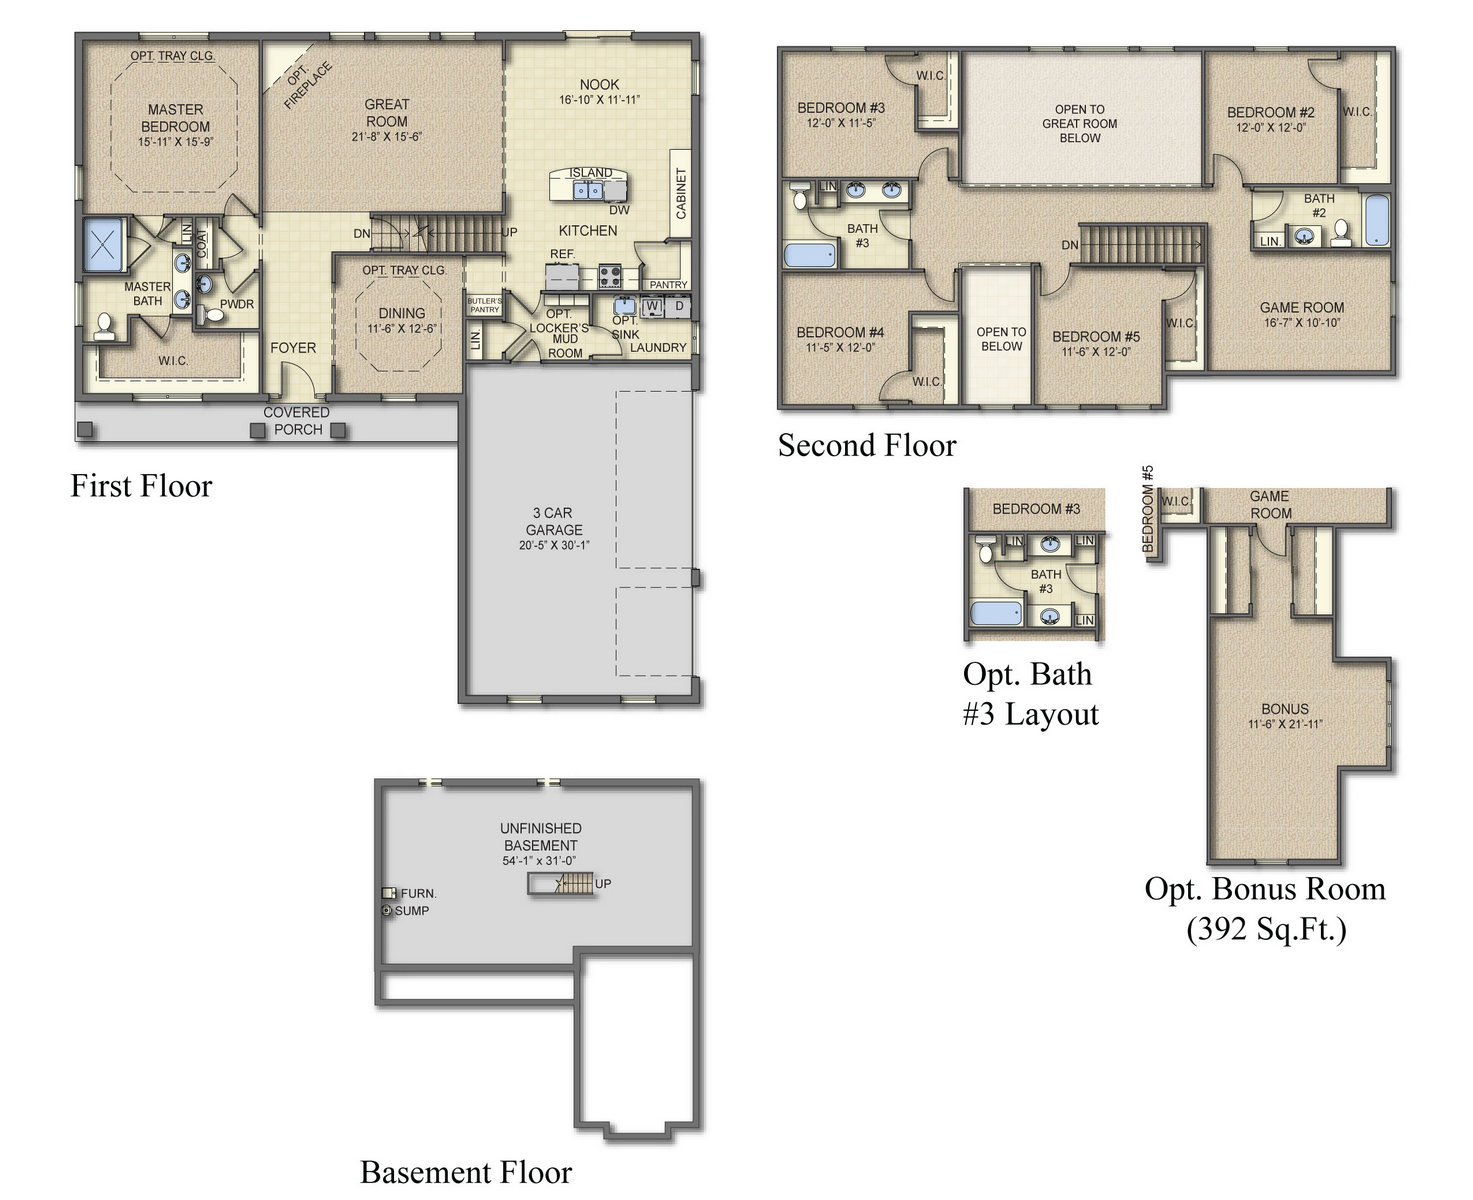 Housing Floor Plans Layout Bristol Ii All Plans Are Fully Customizable Build